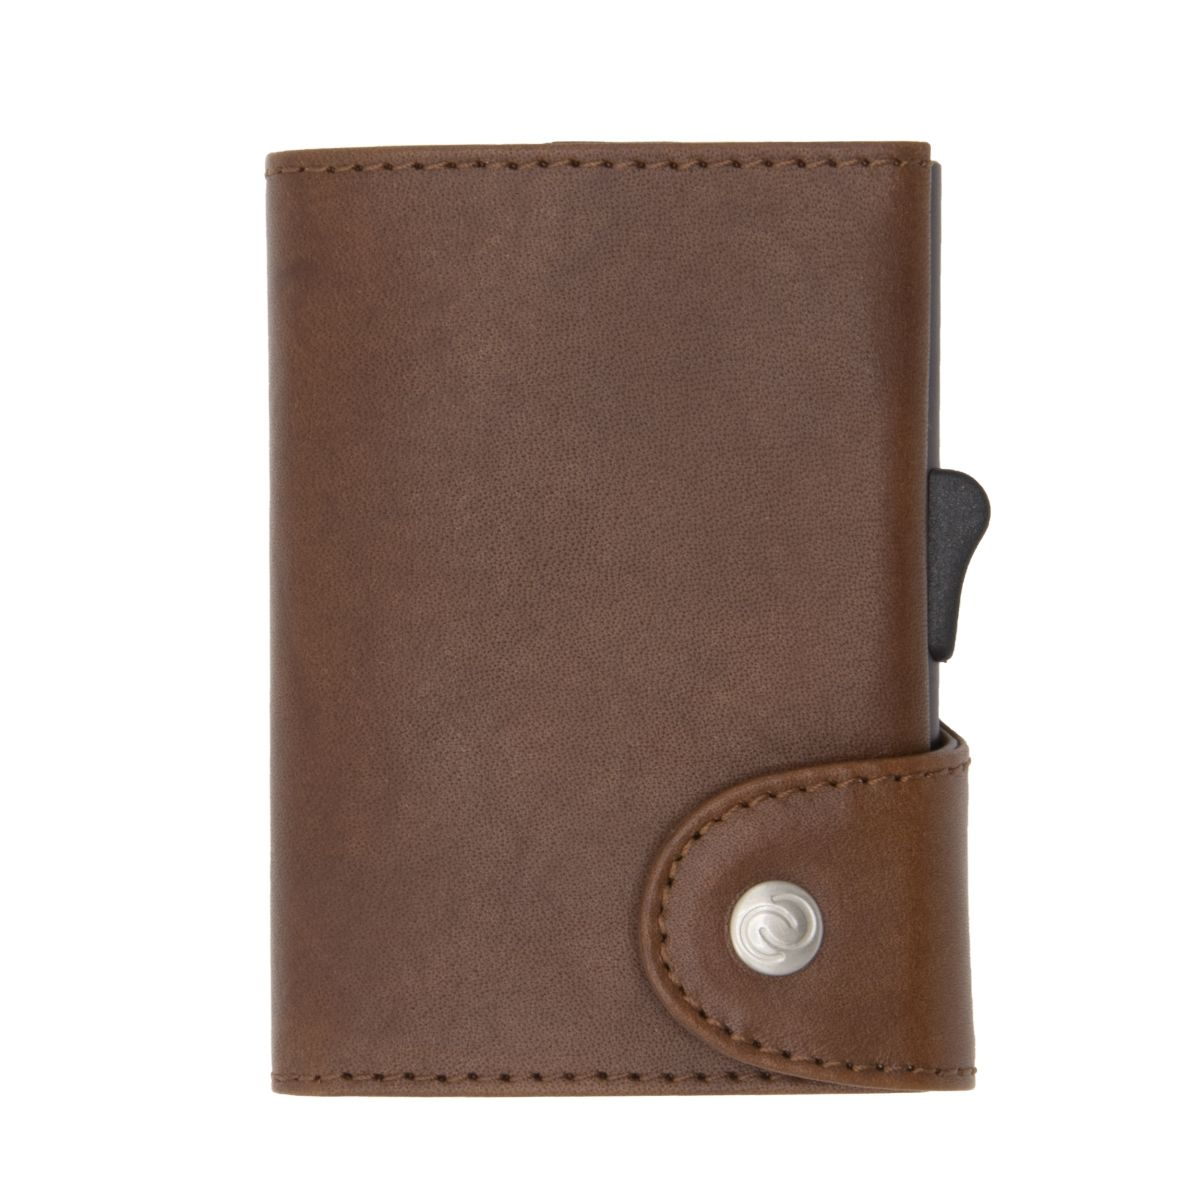 XL Aluminum Wallet with Vegetable Genuine Leather - Brown